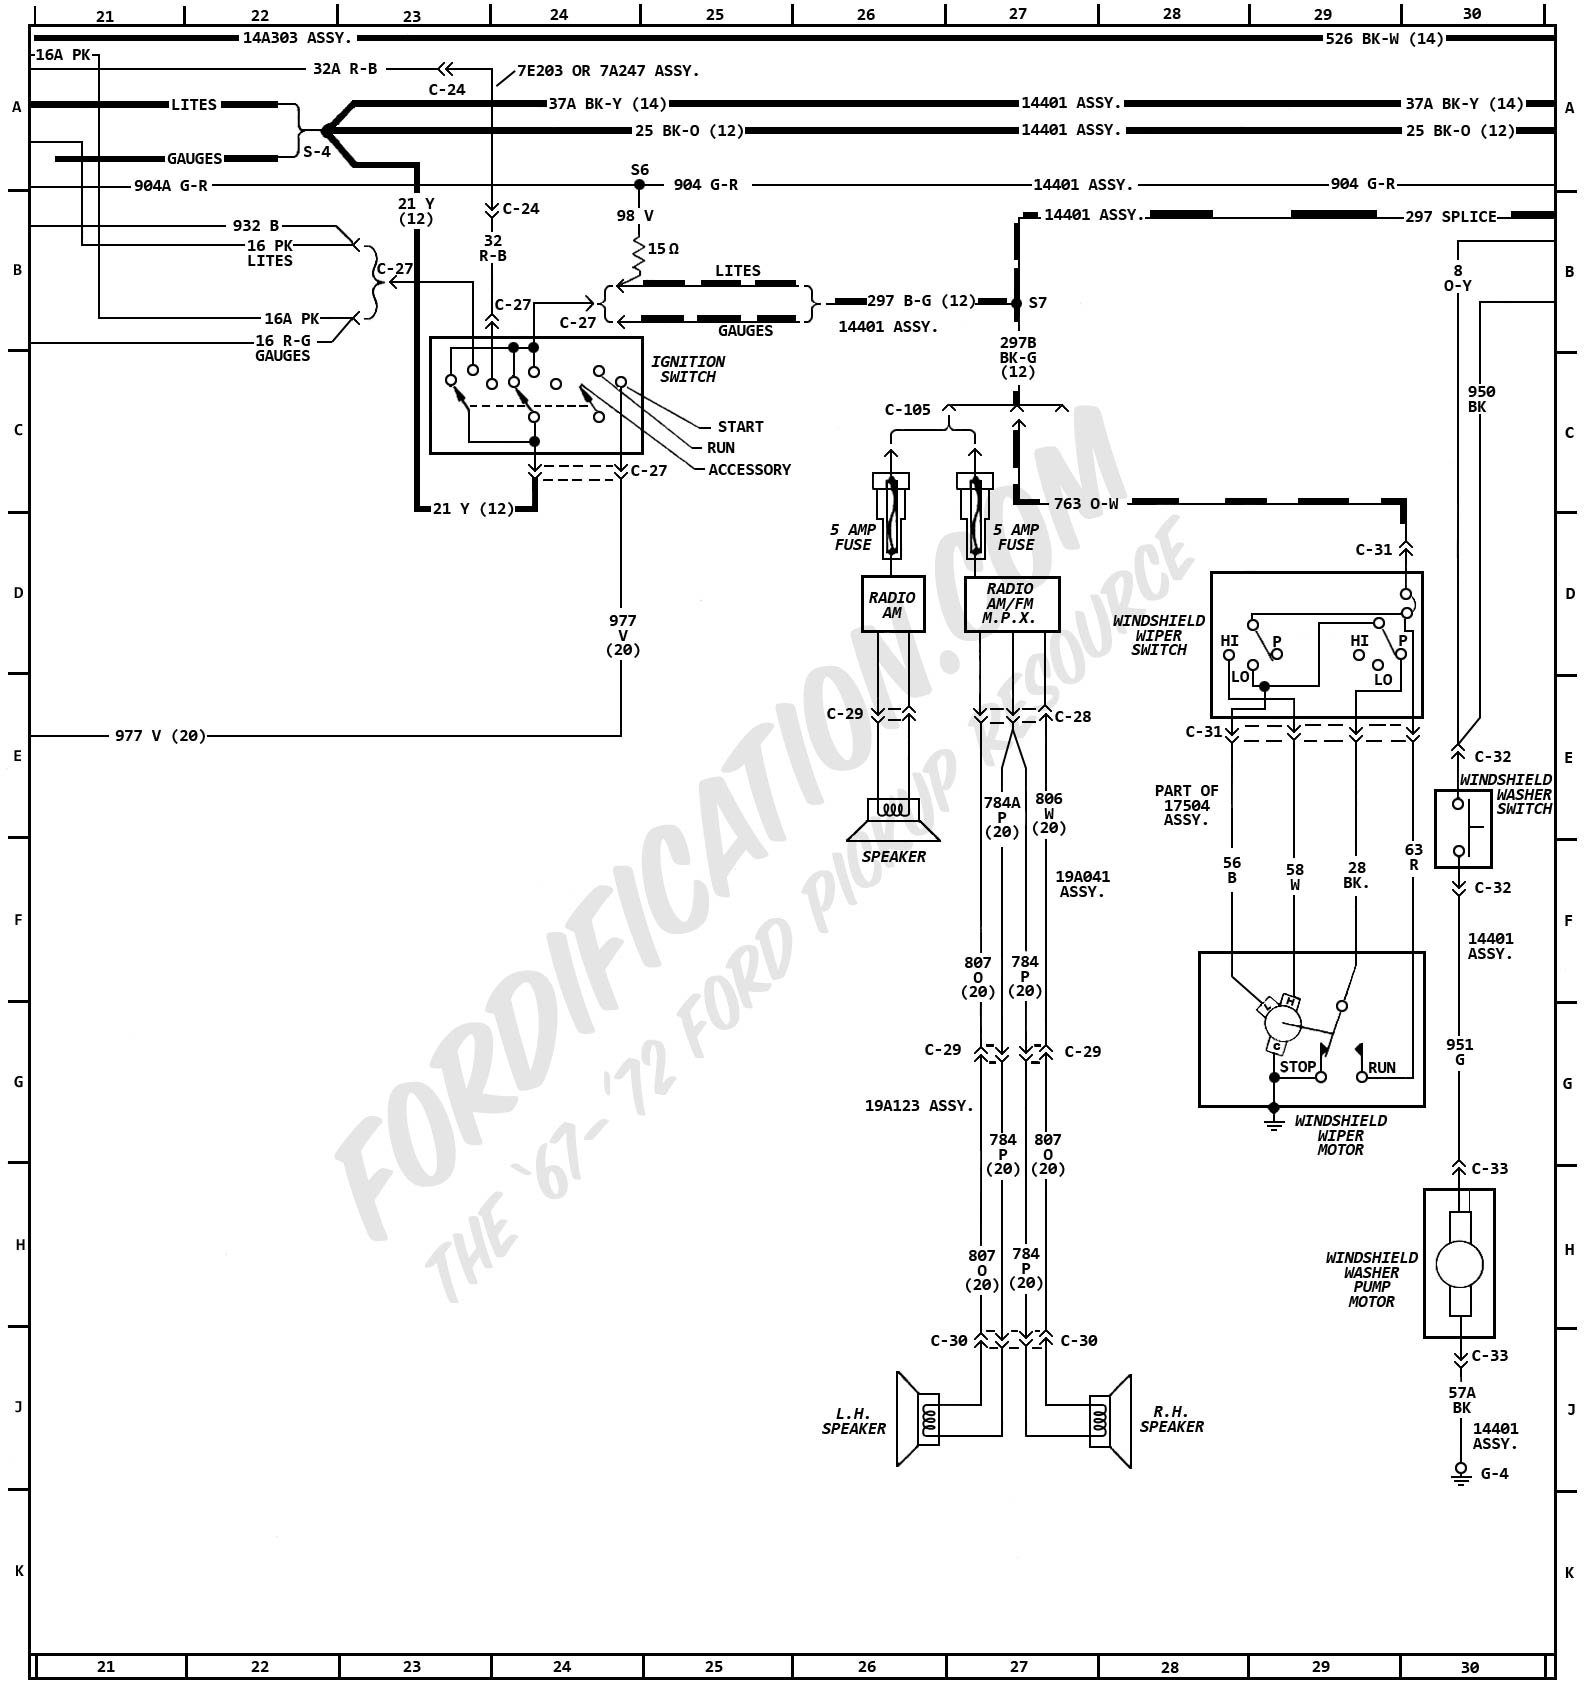 72 ford f250 light wiring diagram • wiring diagram for free 72 f250 wiring diagram only janitrol furnace wiring diagram only